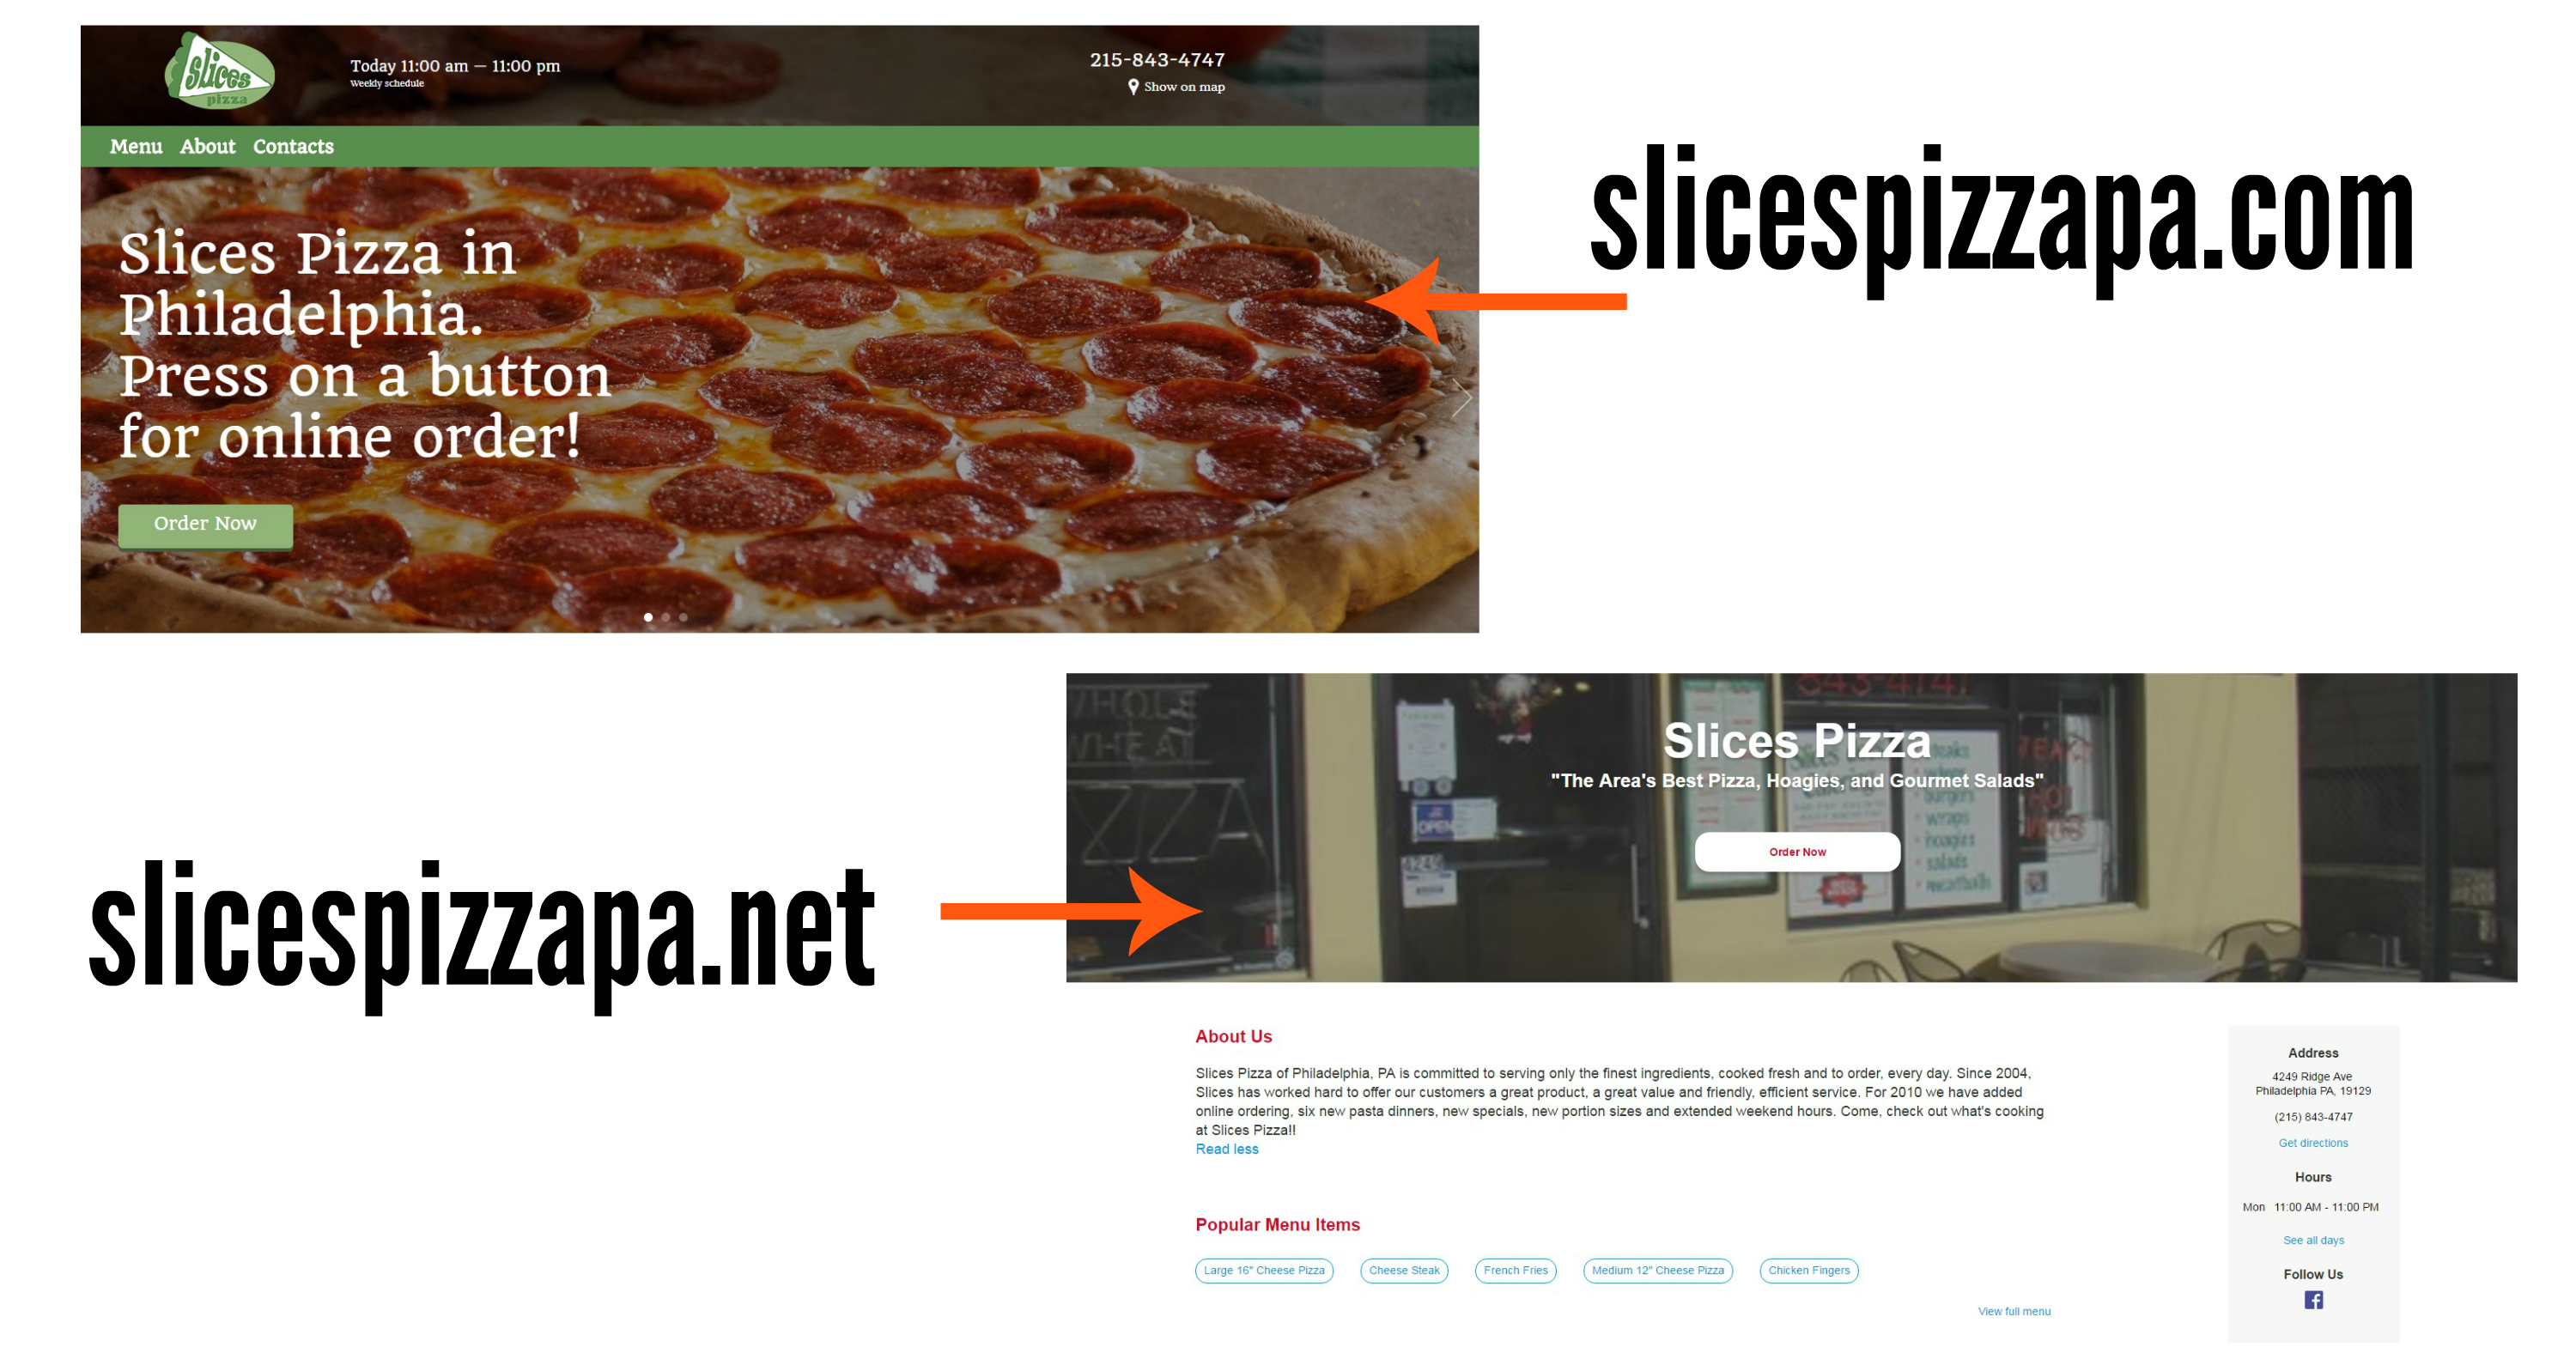 eastfallslocal-slices-pizza-pa-net-vs-com